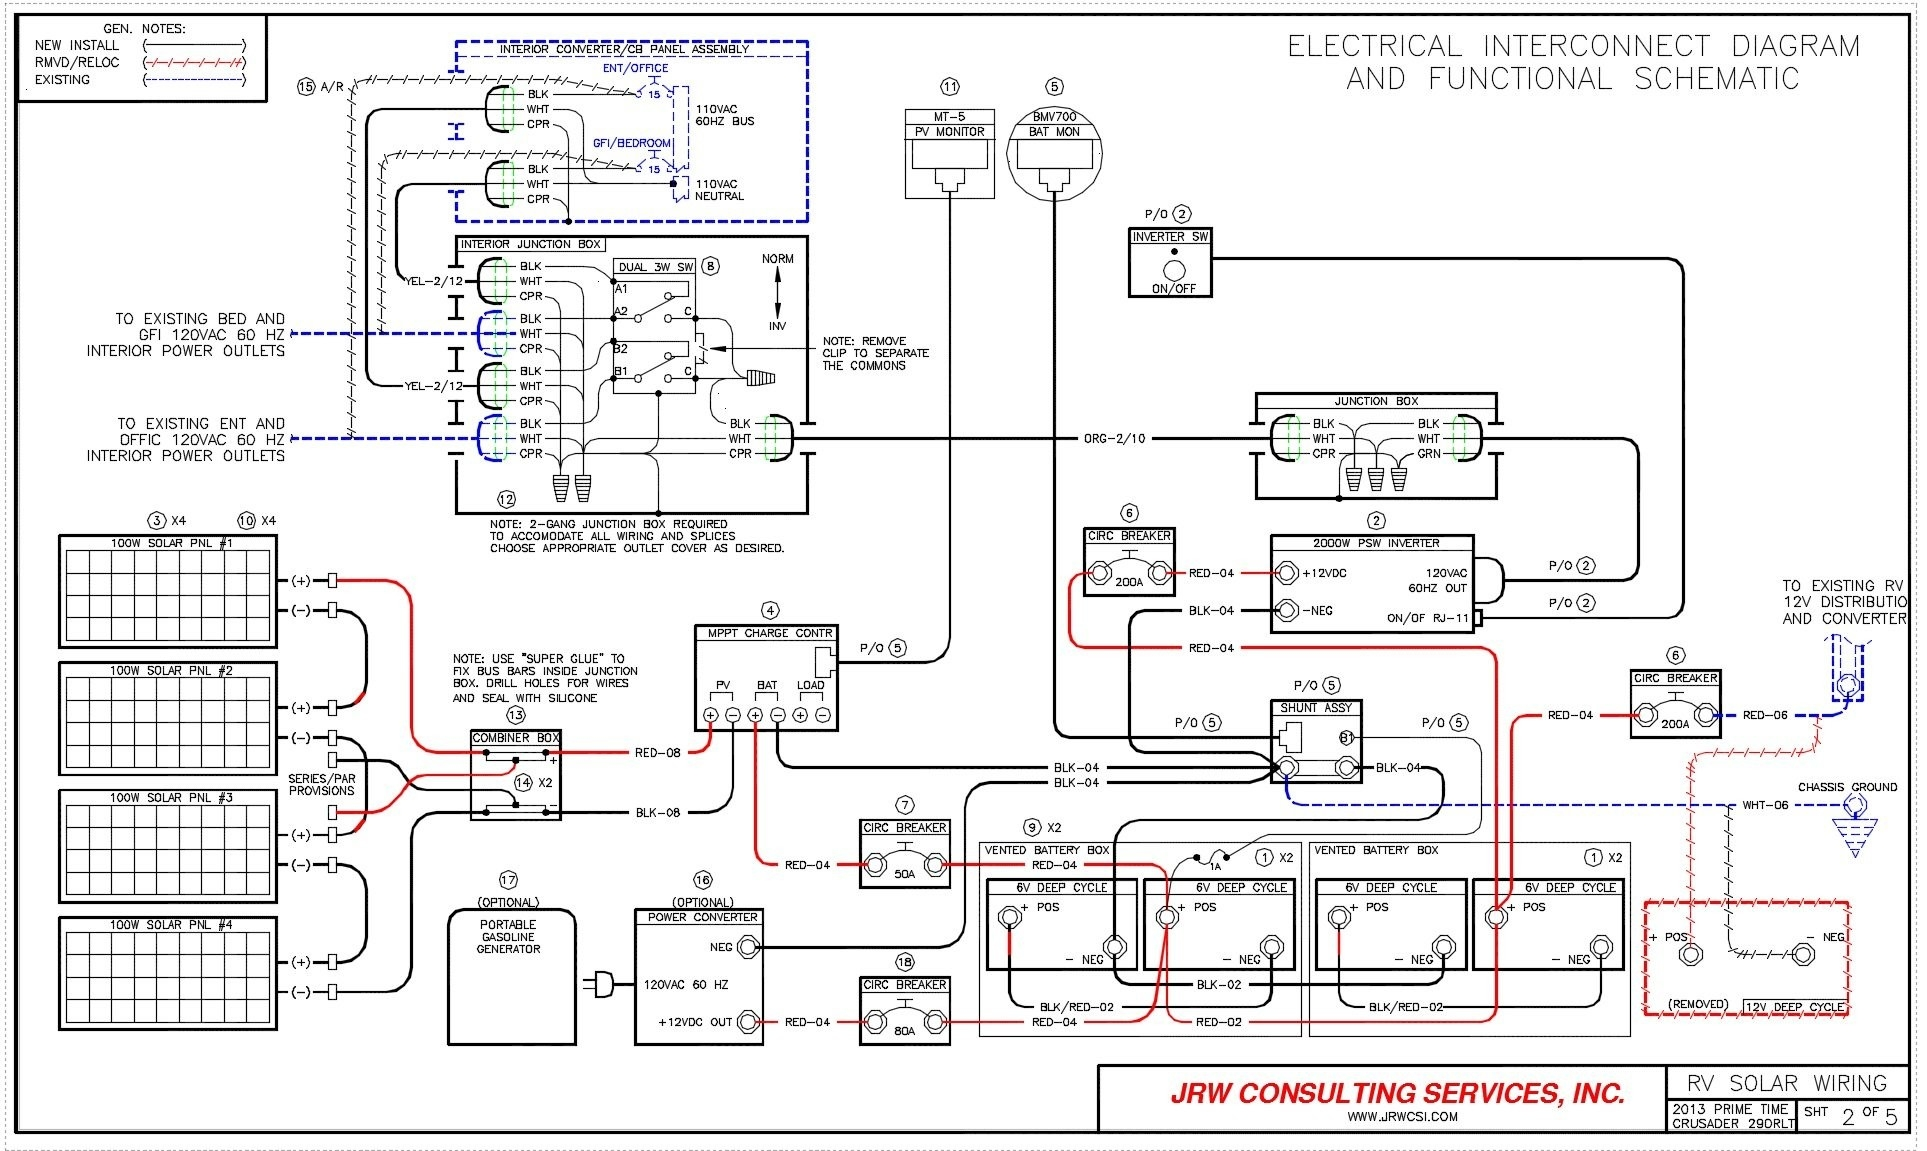 holiday rambler wiring schematic Download-Wiring Diagram for Rv Park Valid Rv solar Wiring Diagram Unique Rv Park Wiring Diagram Wiring 14-e